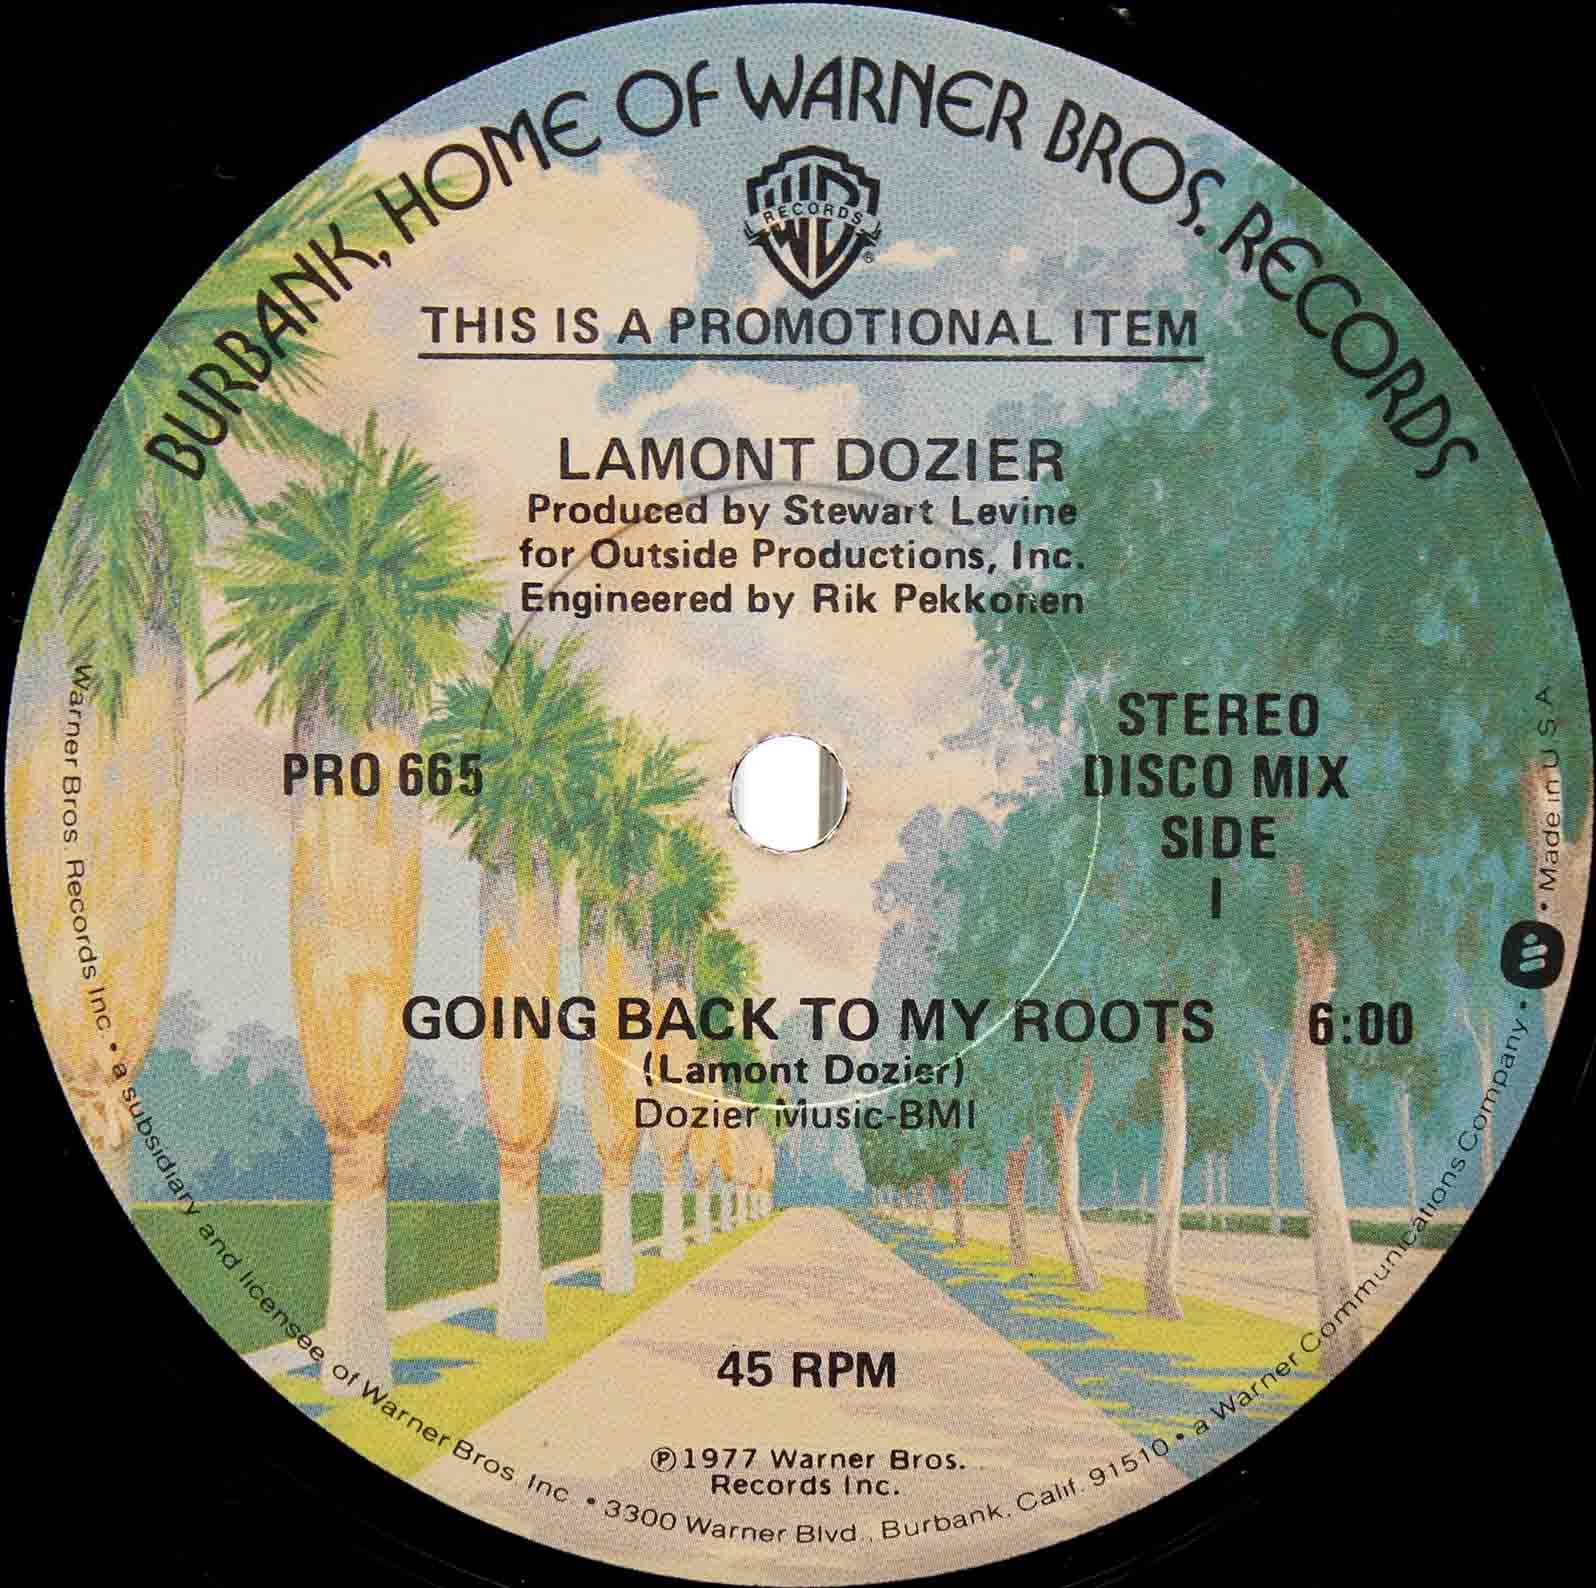 Lamont Dozier – Going Back To My Roots 02